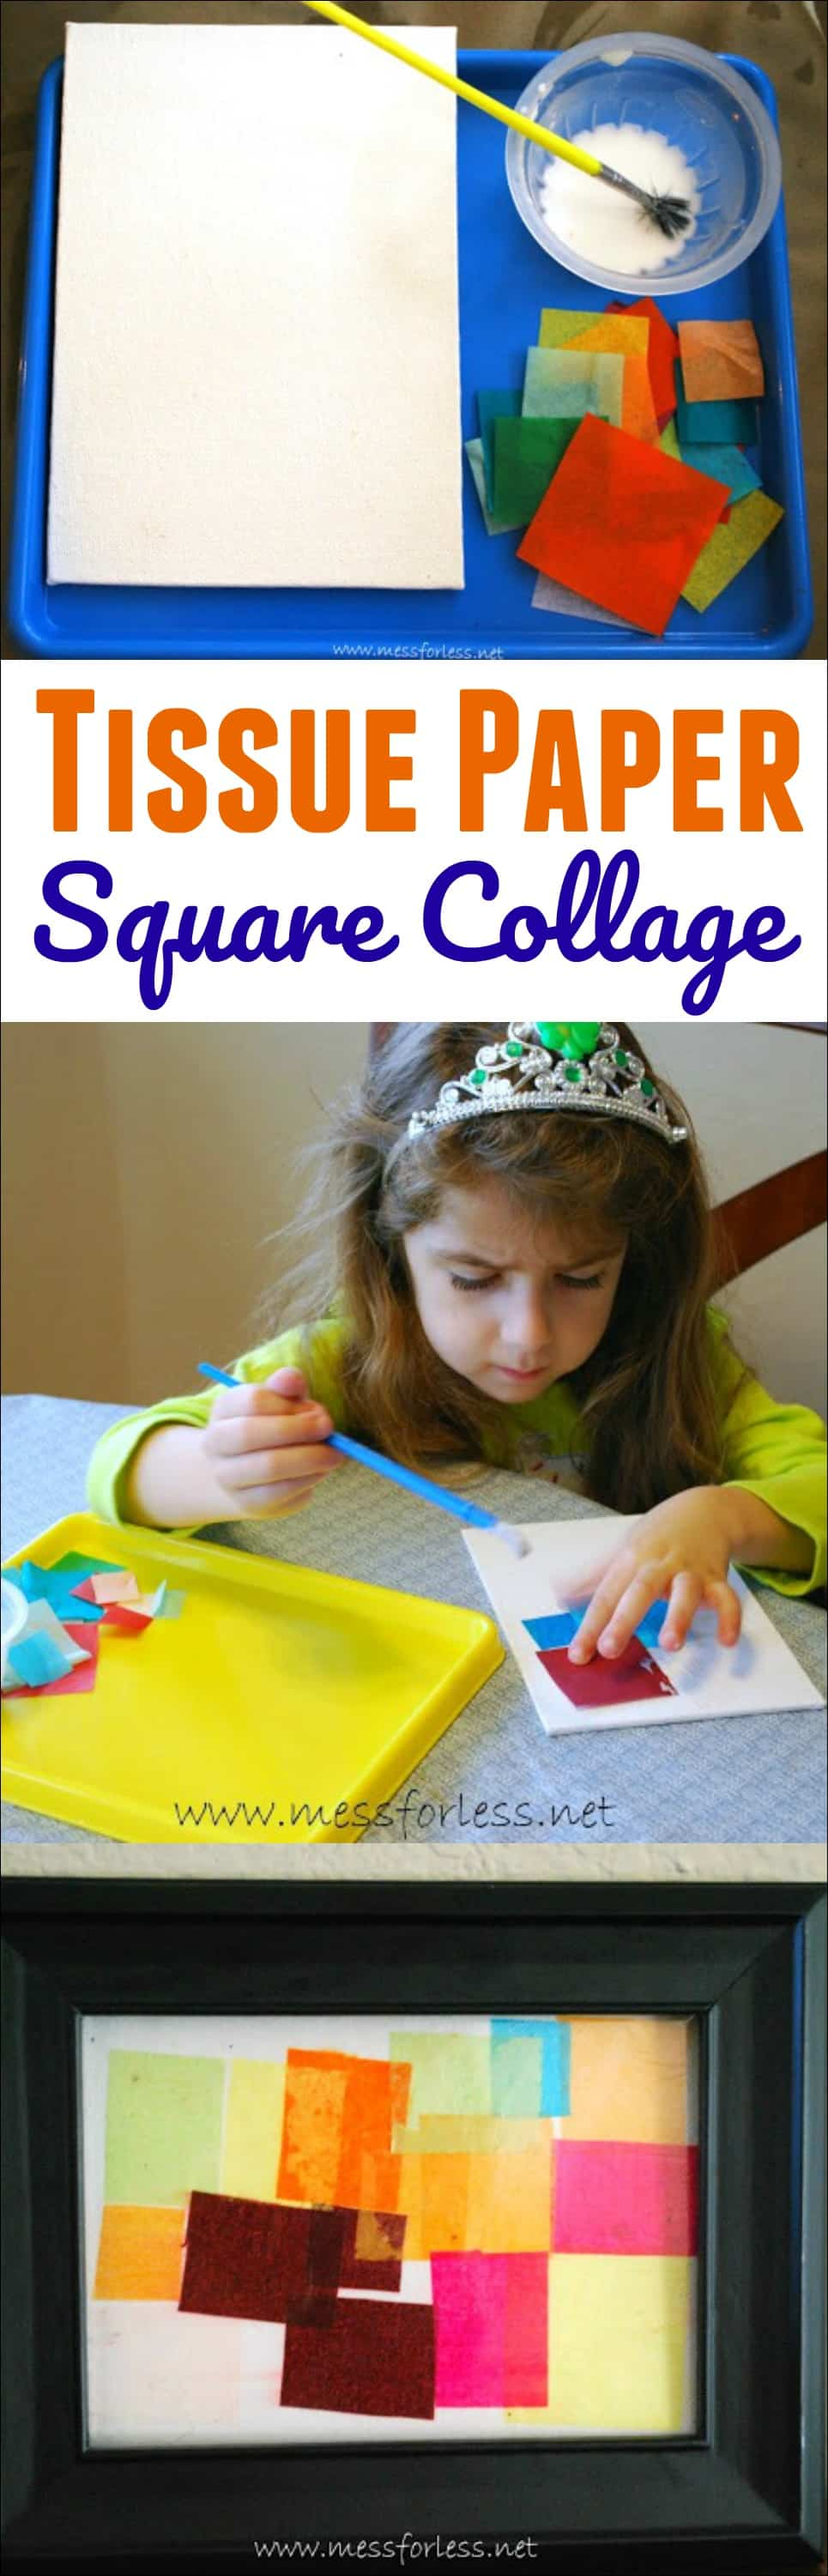 Tissue Paper Square Collage - Using tissue paper and glue on canvas kids can create a work of art.